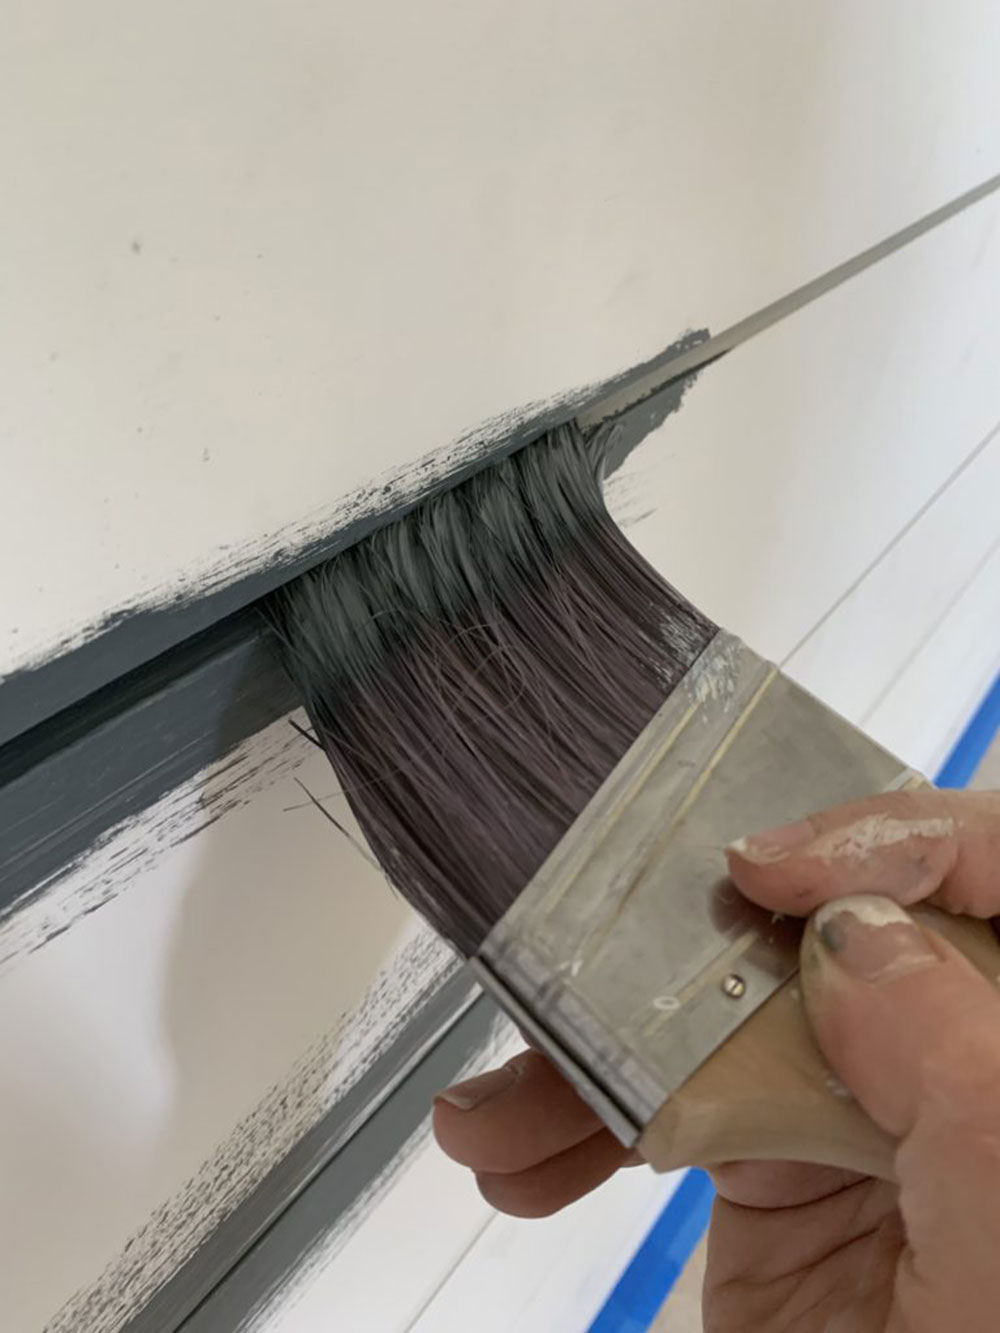 Brush paint Should you put Shiplap over drywall?